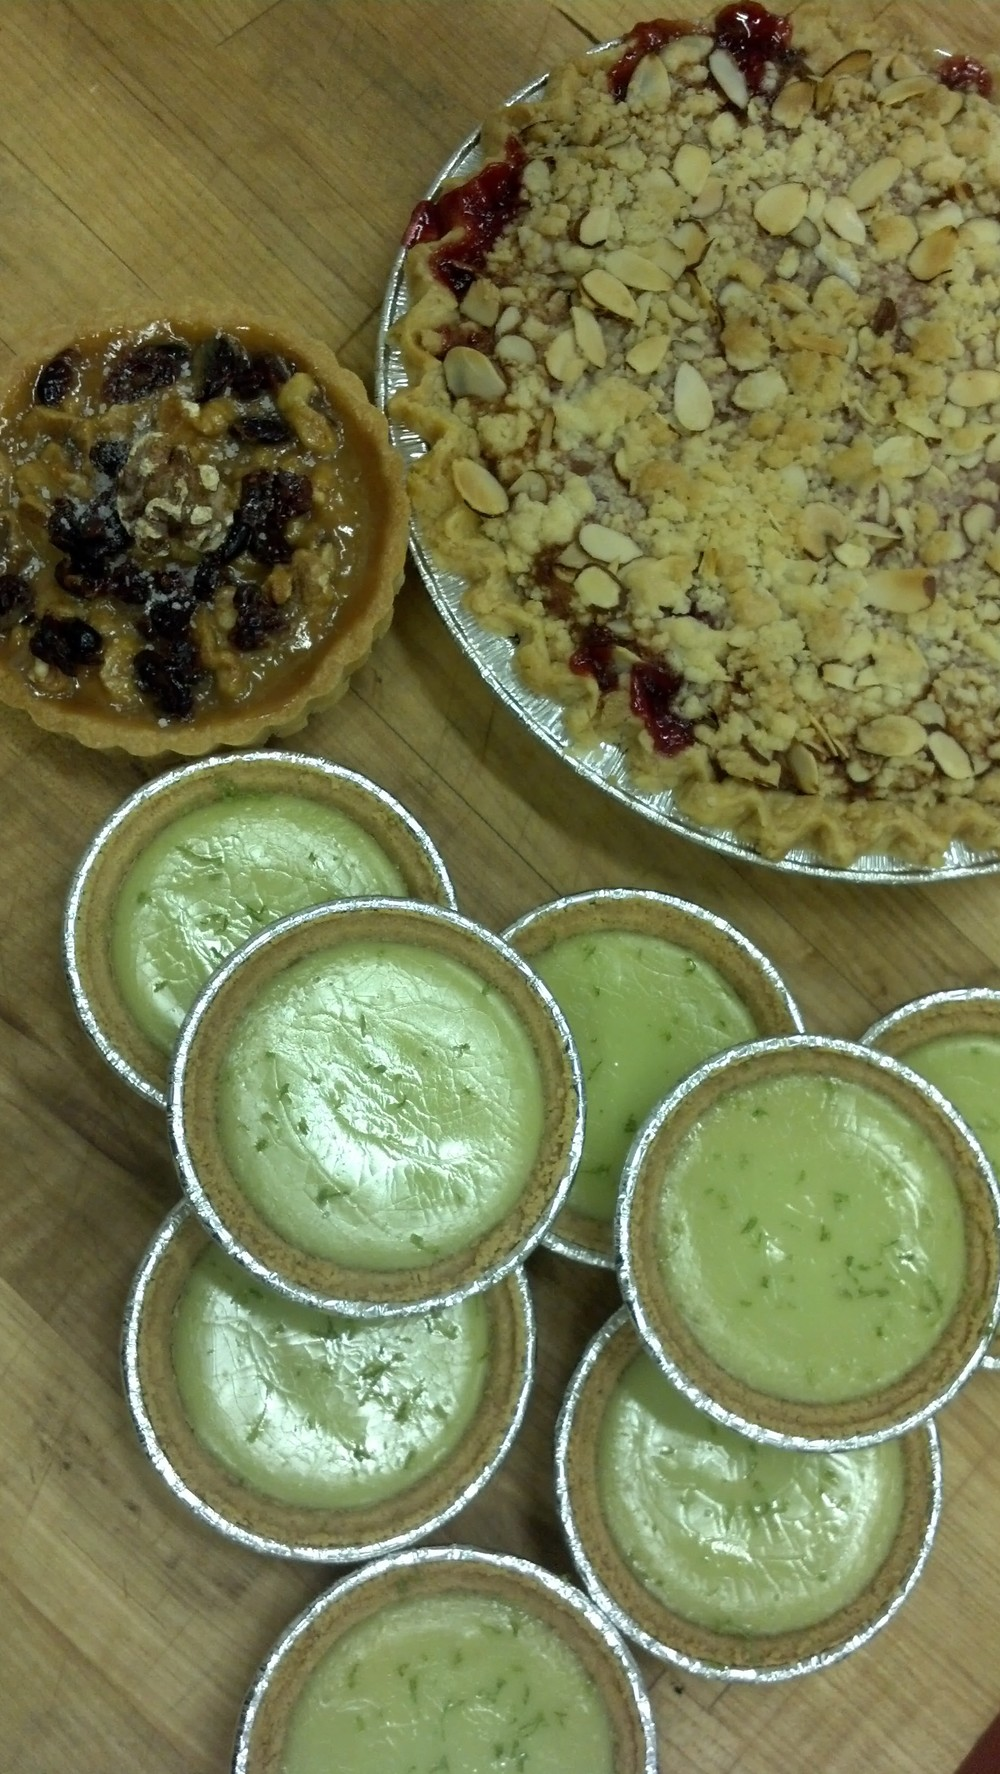 Cherry-Almond Crumb Pie, Key Lime Tarts, Cashew-Cherry Caramel Tart